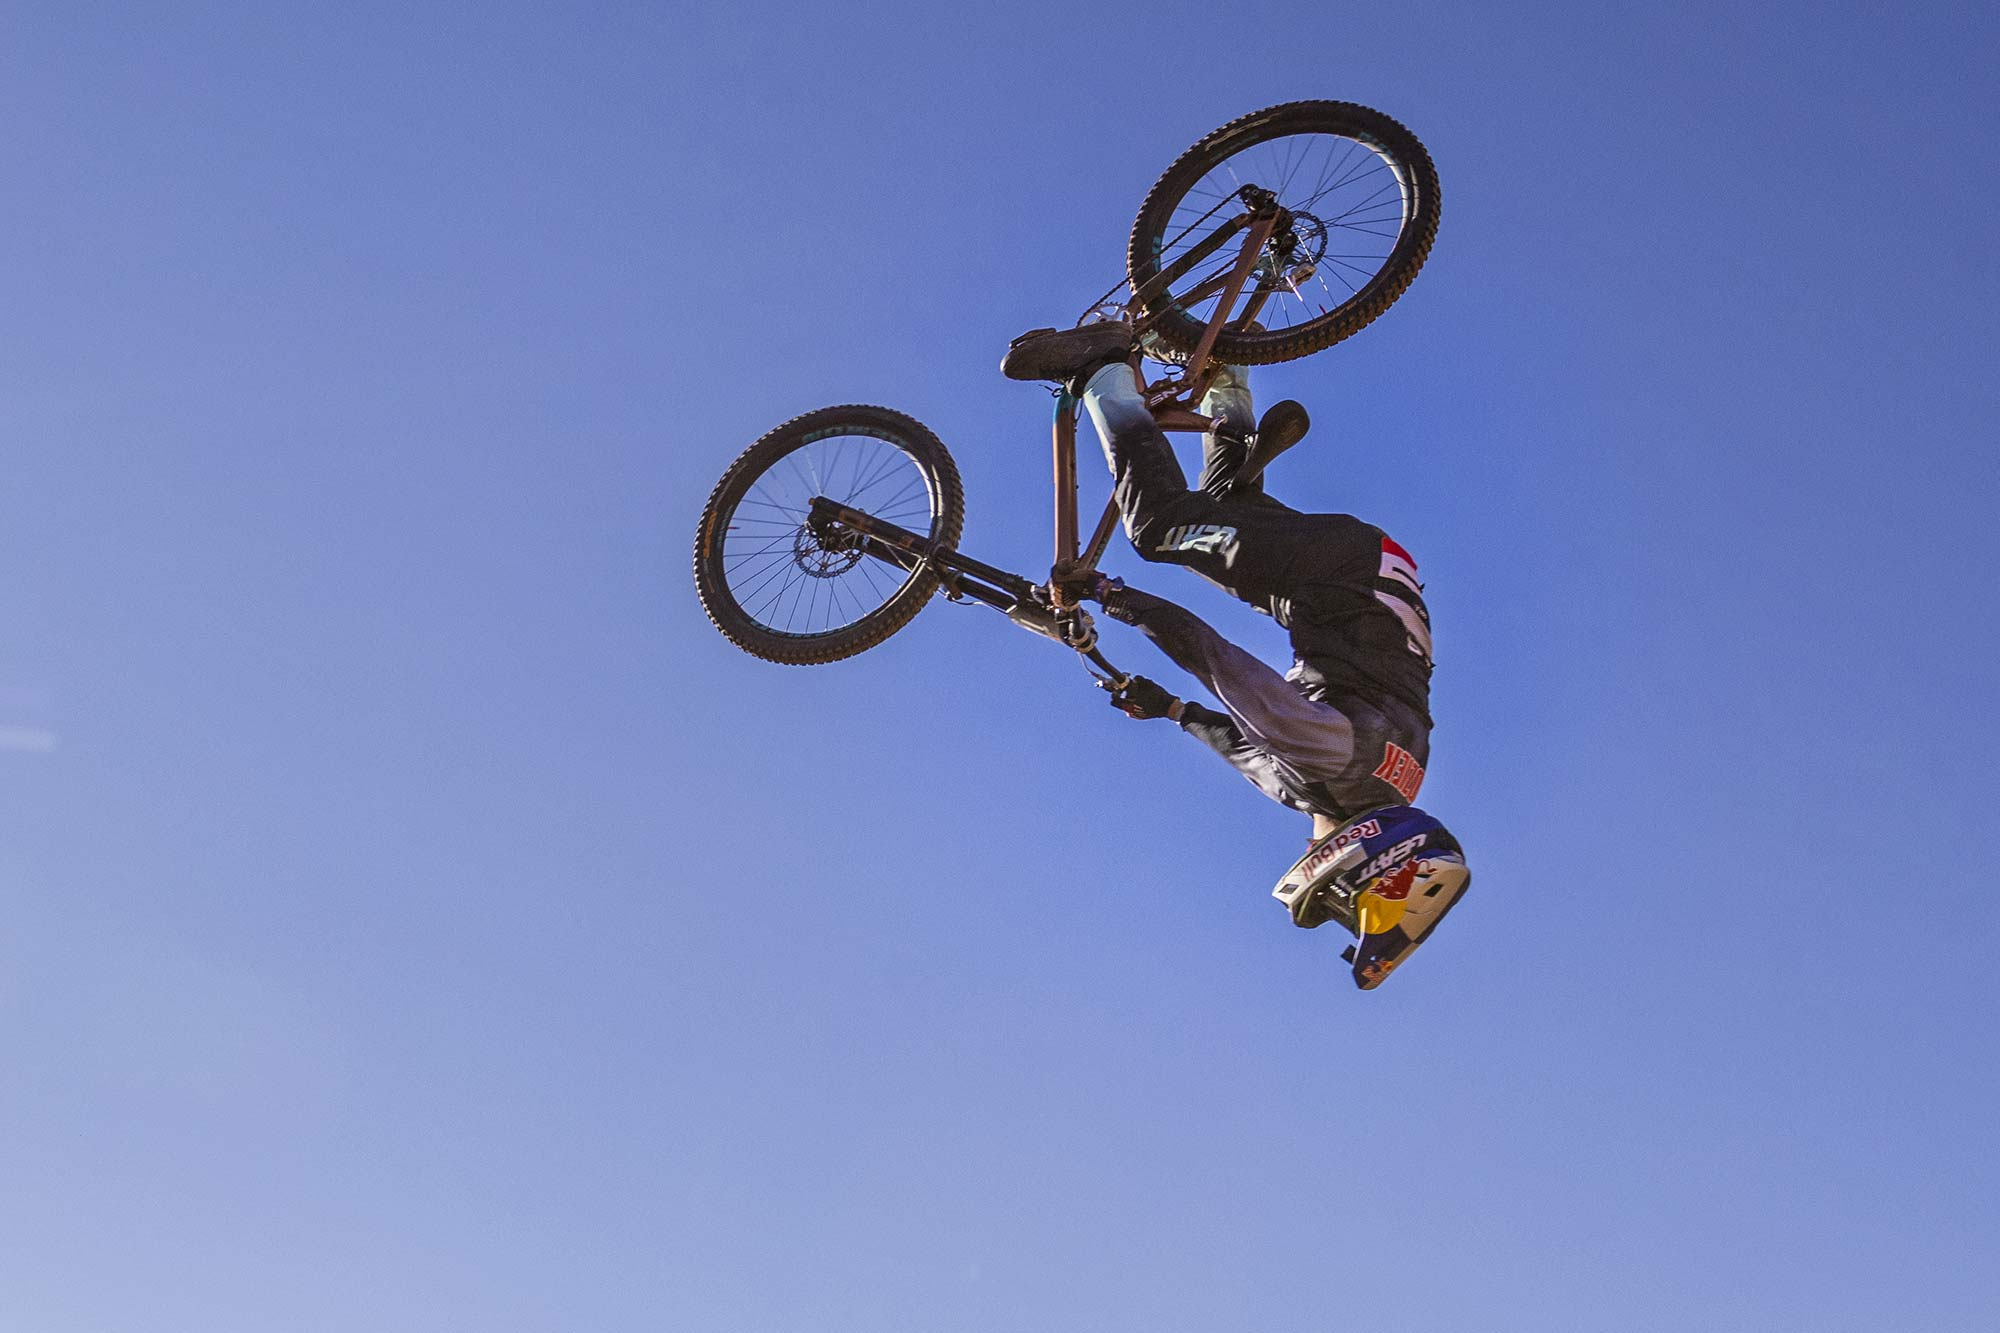 Red Bull Rampage Pro Bike Check Roundup, photo by Catherine Aeppel